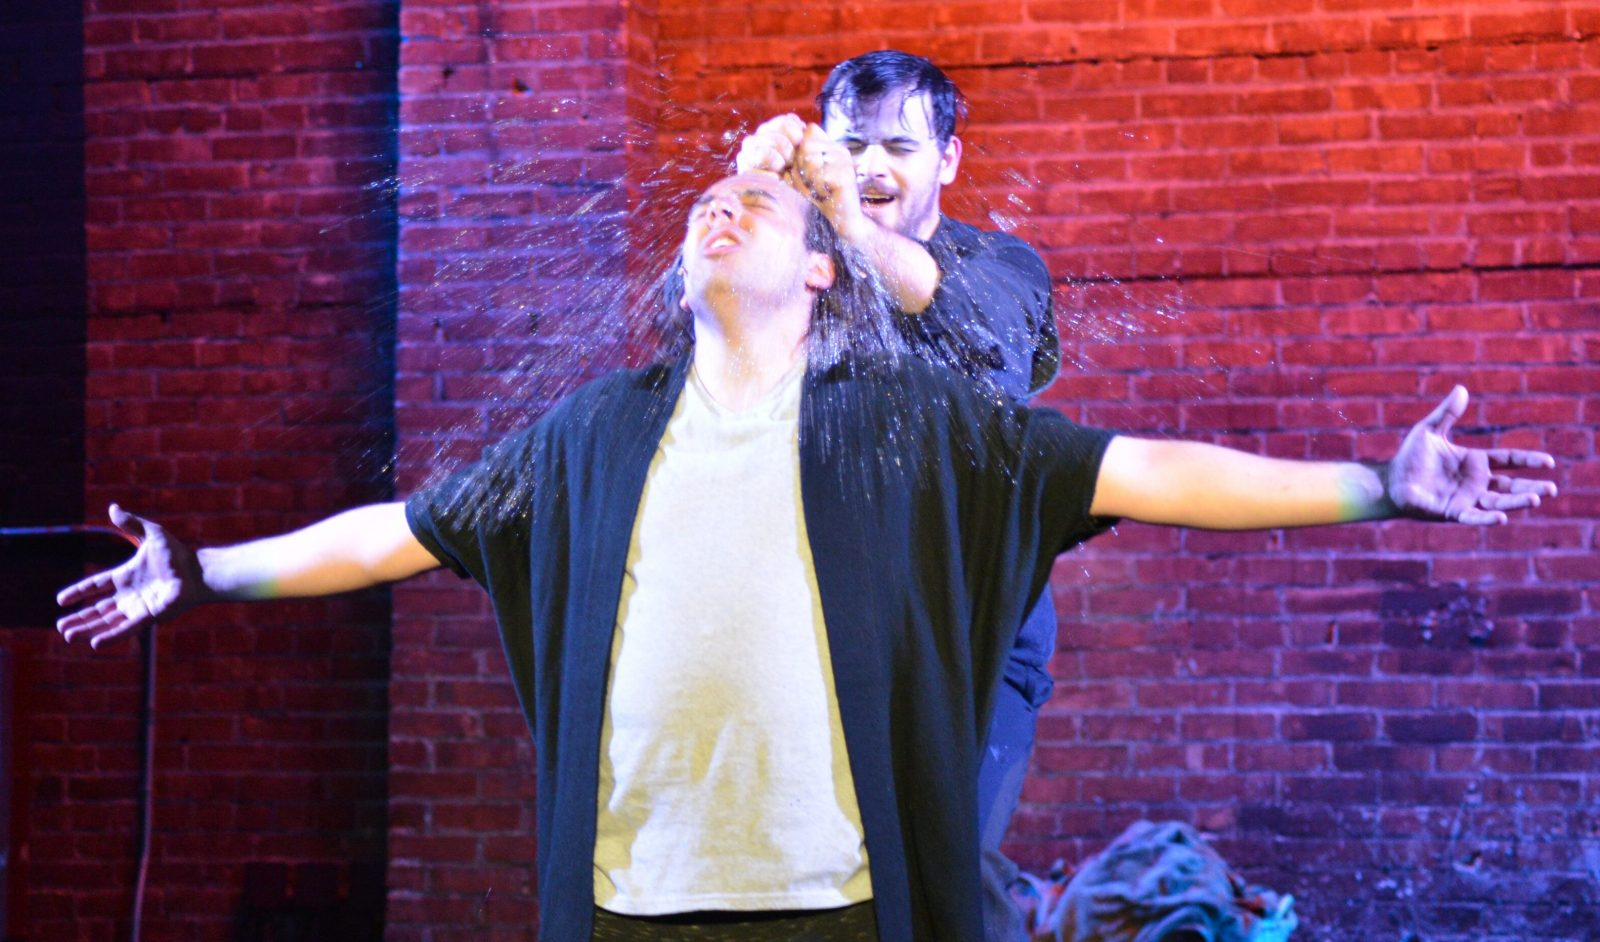 Jesus (Kyle Baran) is being baptized by John the Baptist (Tim Goehrig) in the Lancaster Opera House production of 'Godspell.'